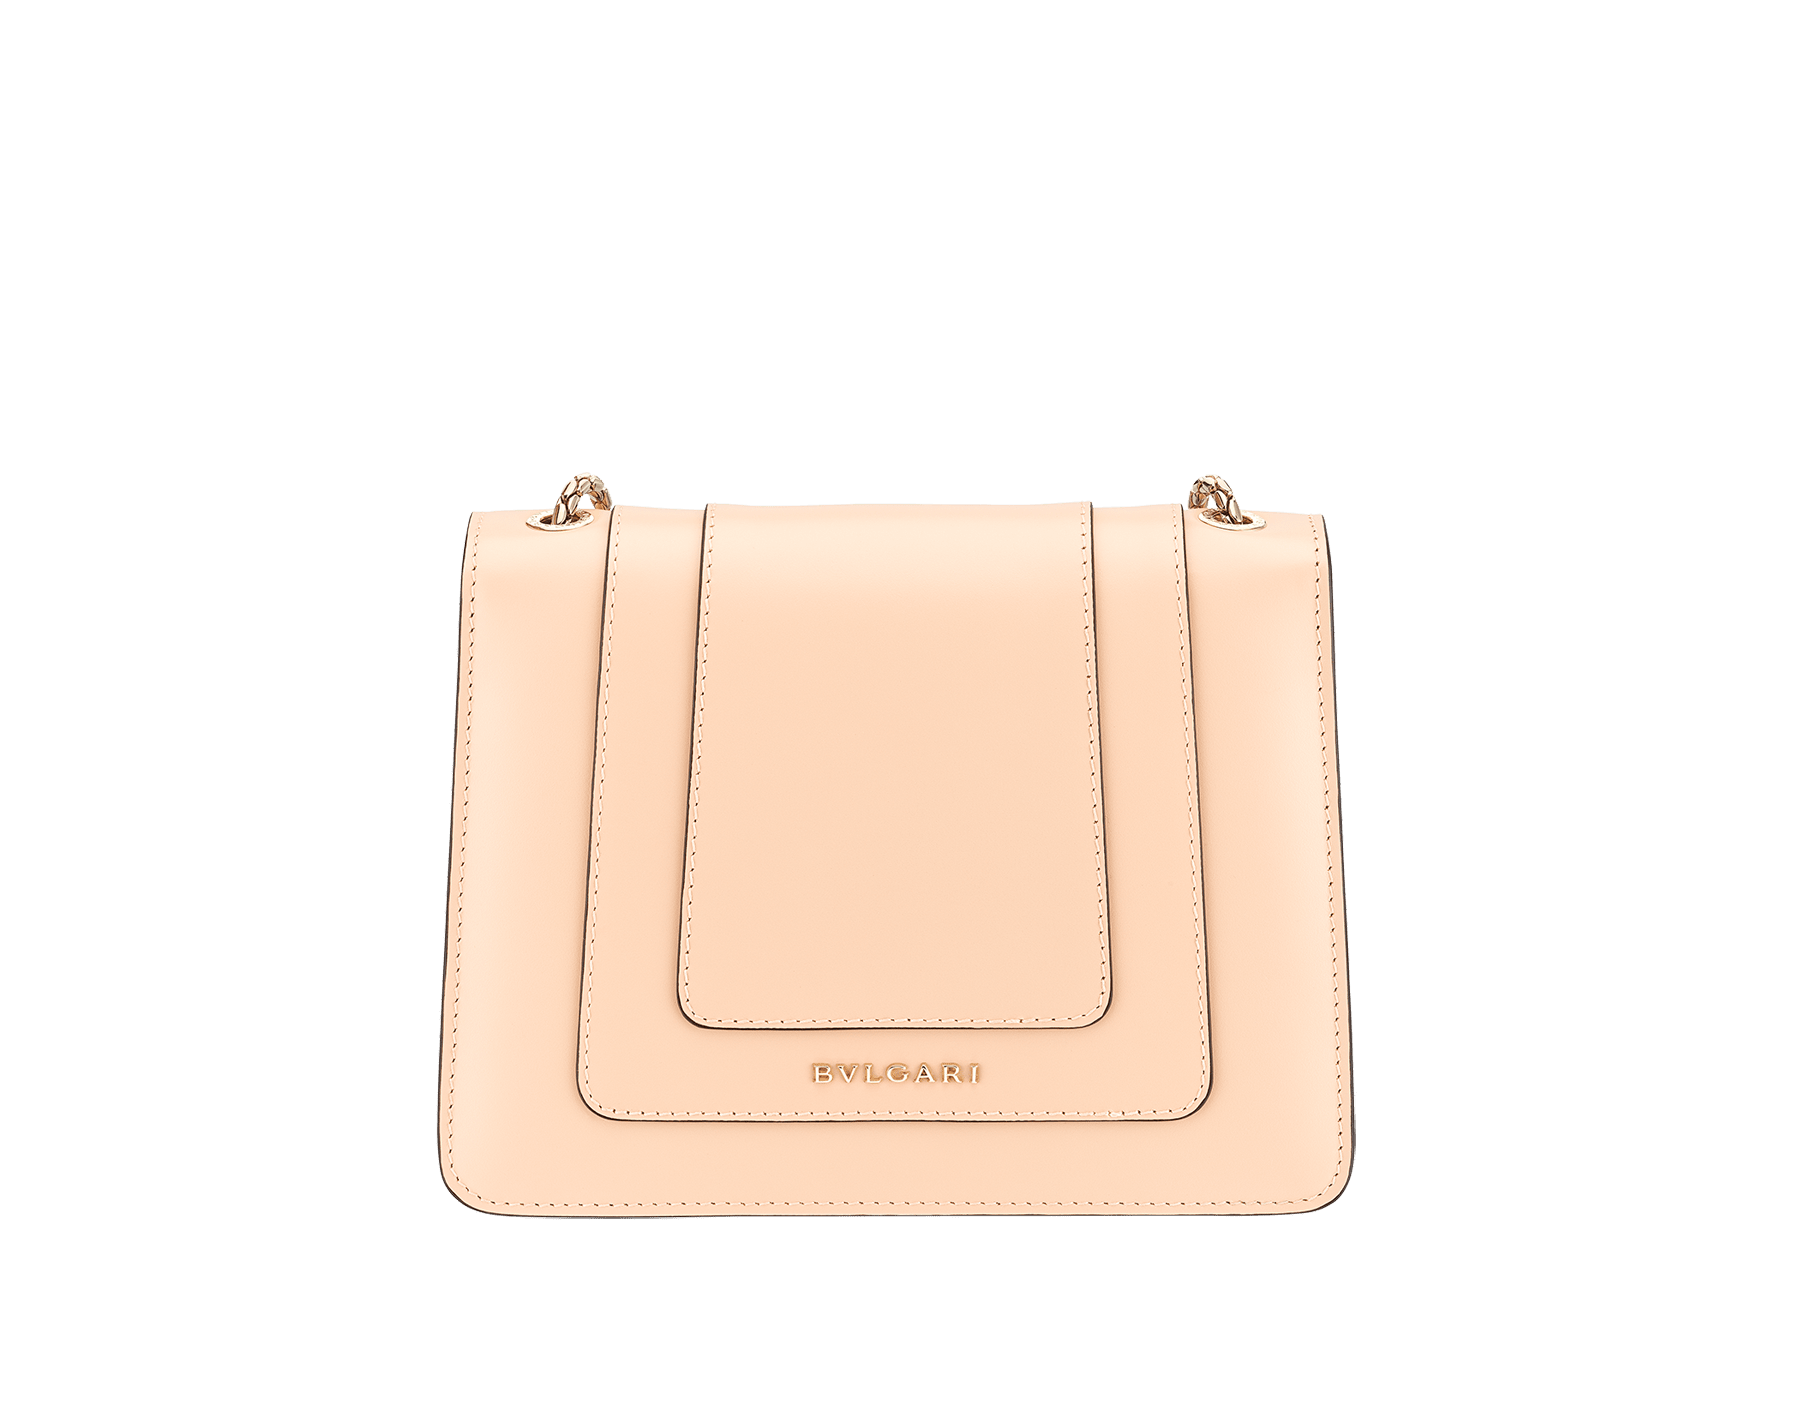 """Serpenti Forever"" crossbody bag in peach calf leather with Pink Spinel fuchsia gros grain internal lining. Iconic snakehead closure in light gold plated brass enriched with black and white agate enamel and green malachite eyes. 422-CLc image 3"